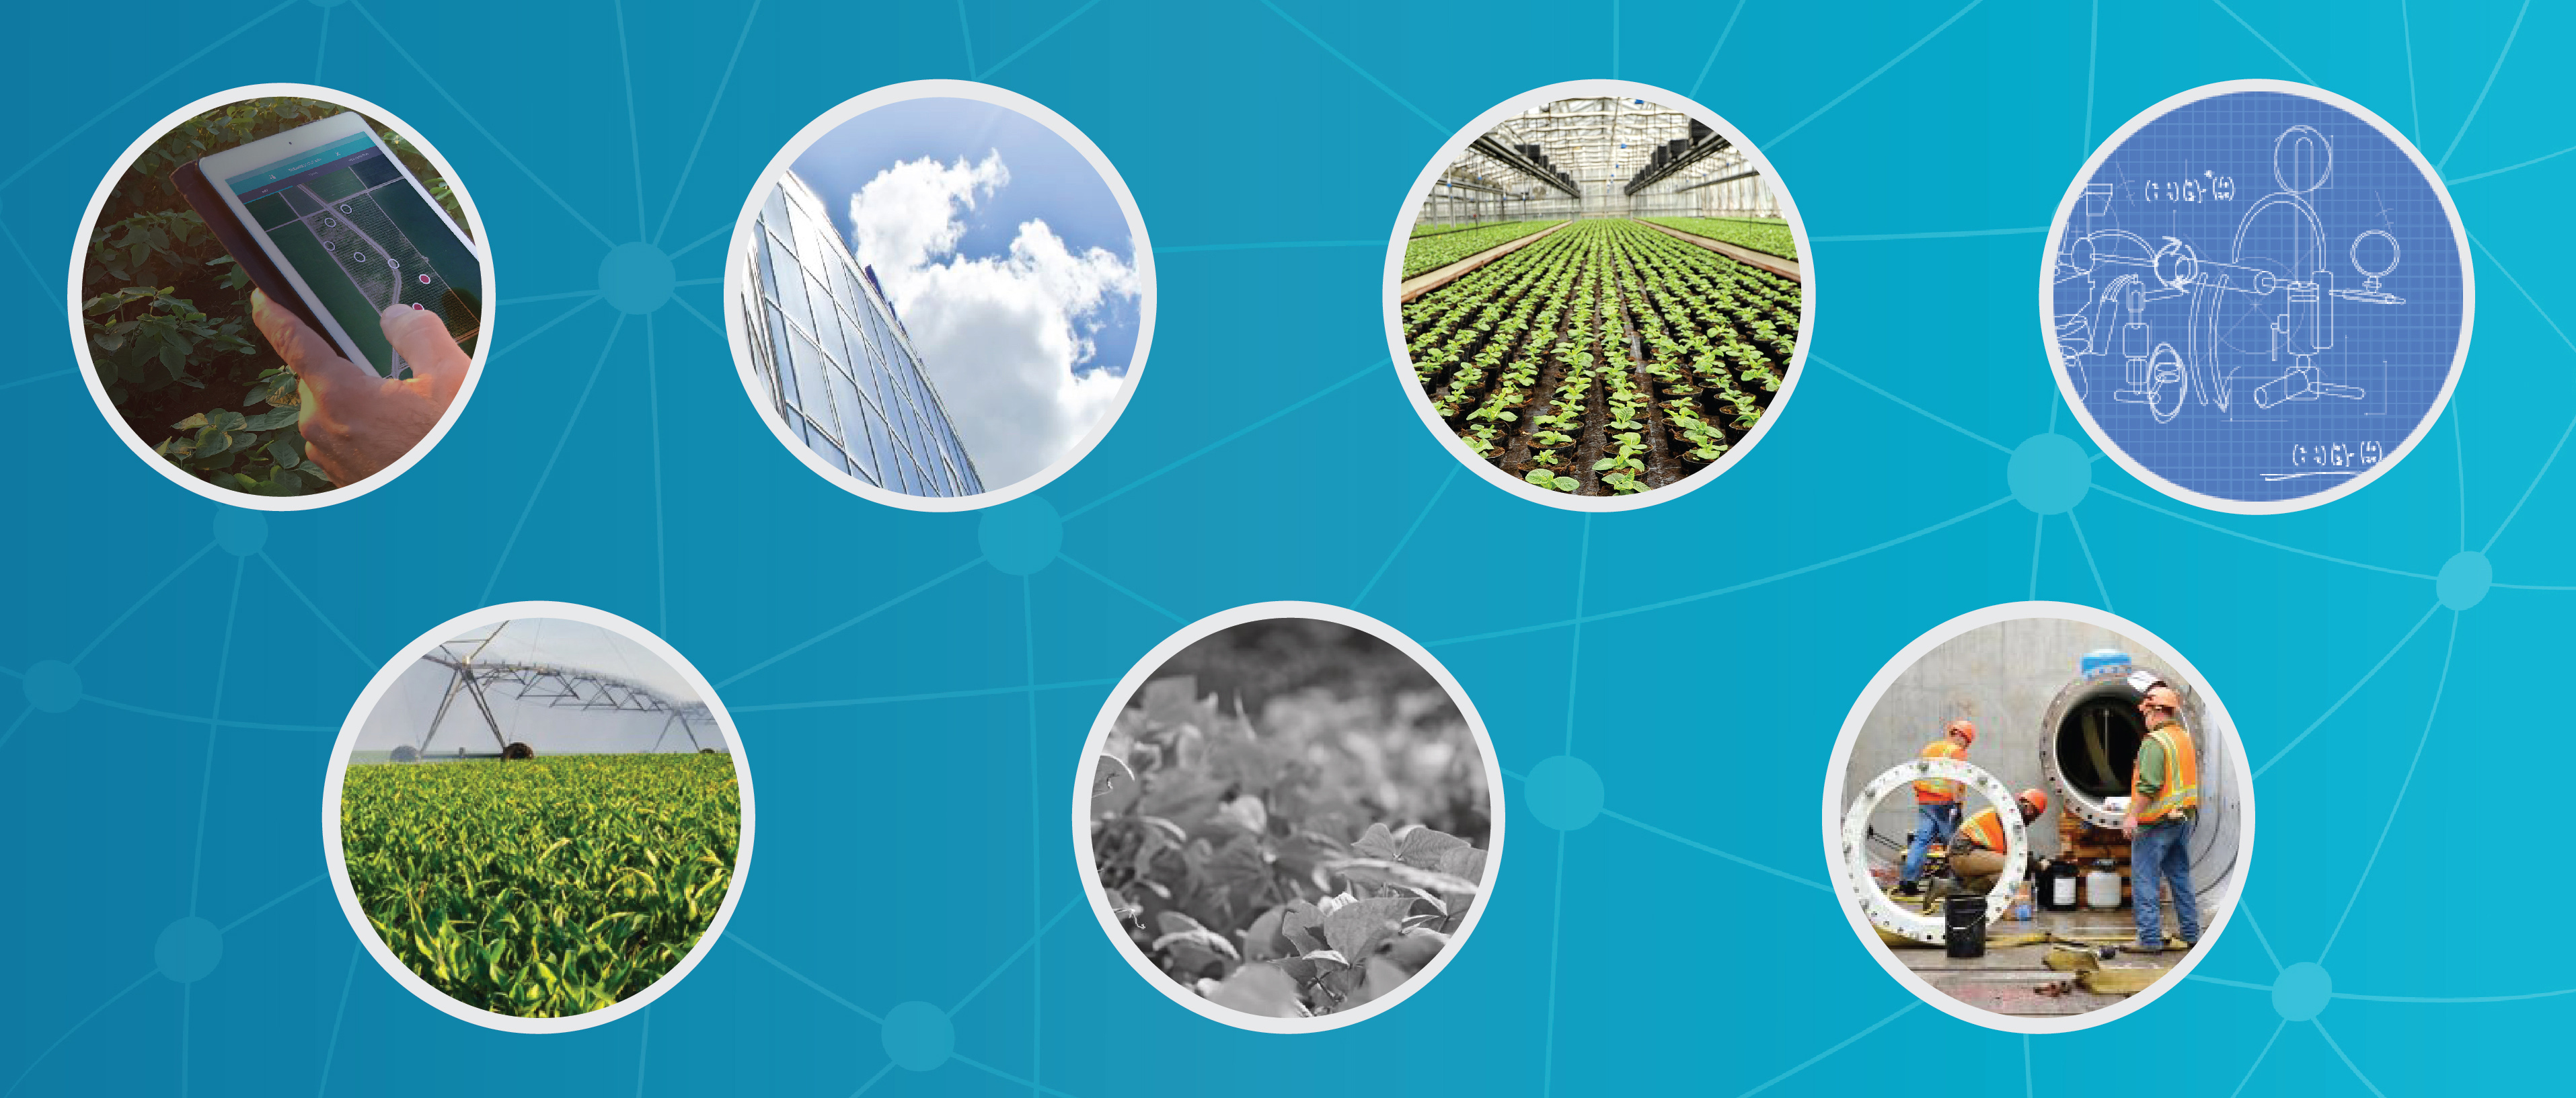 Growing Innovation with OurCrowd's GreenTech Portfolio [Infographic]